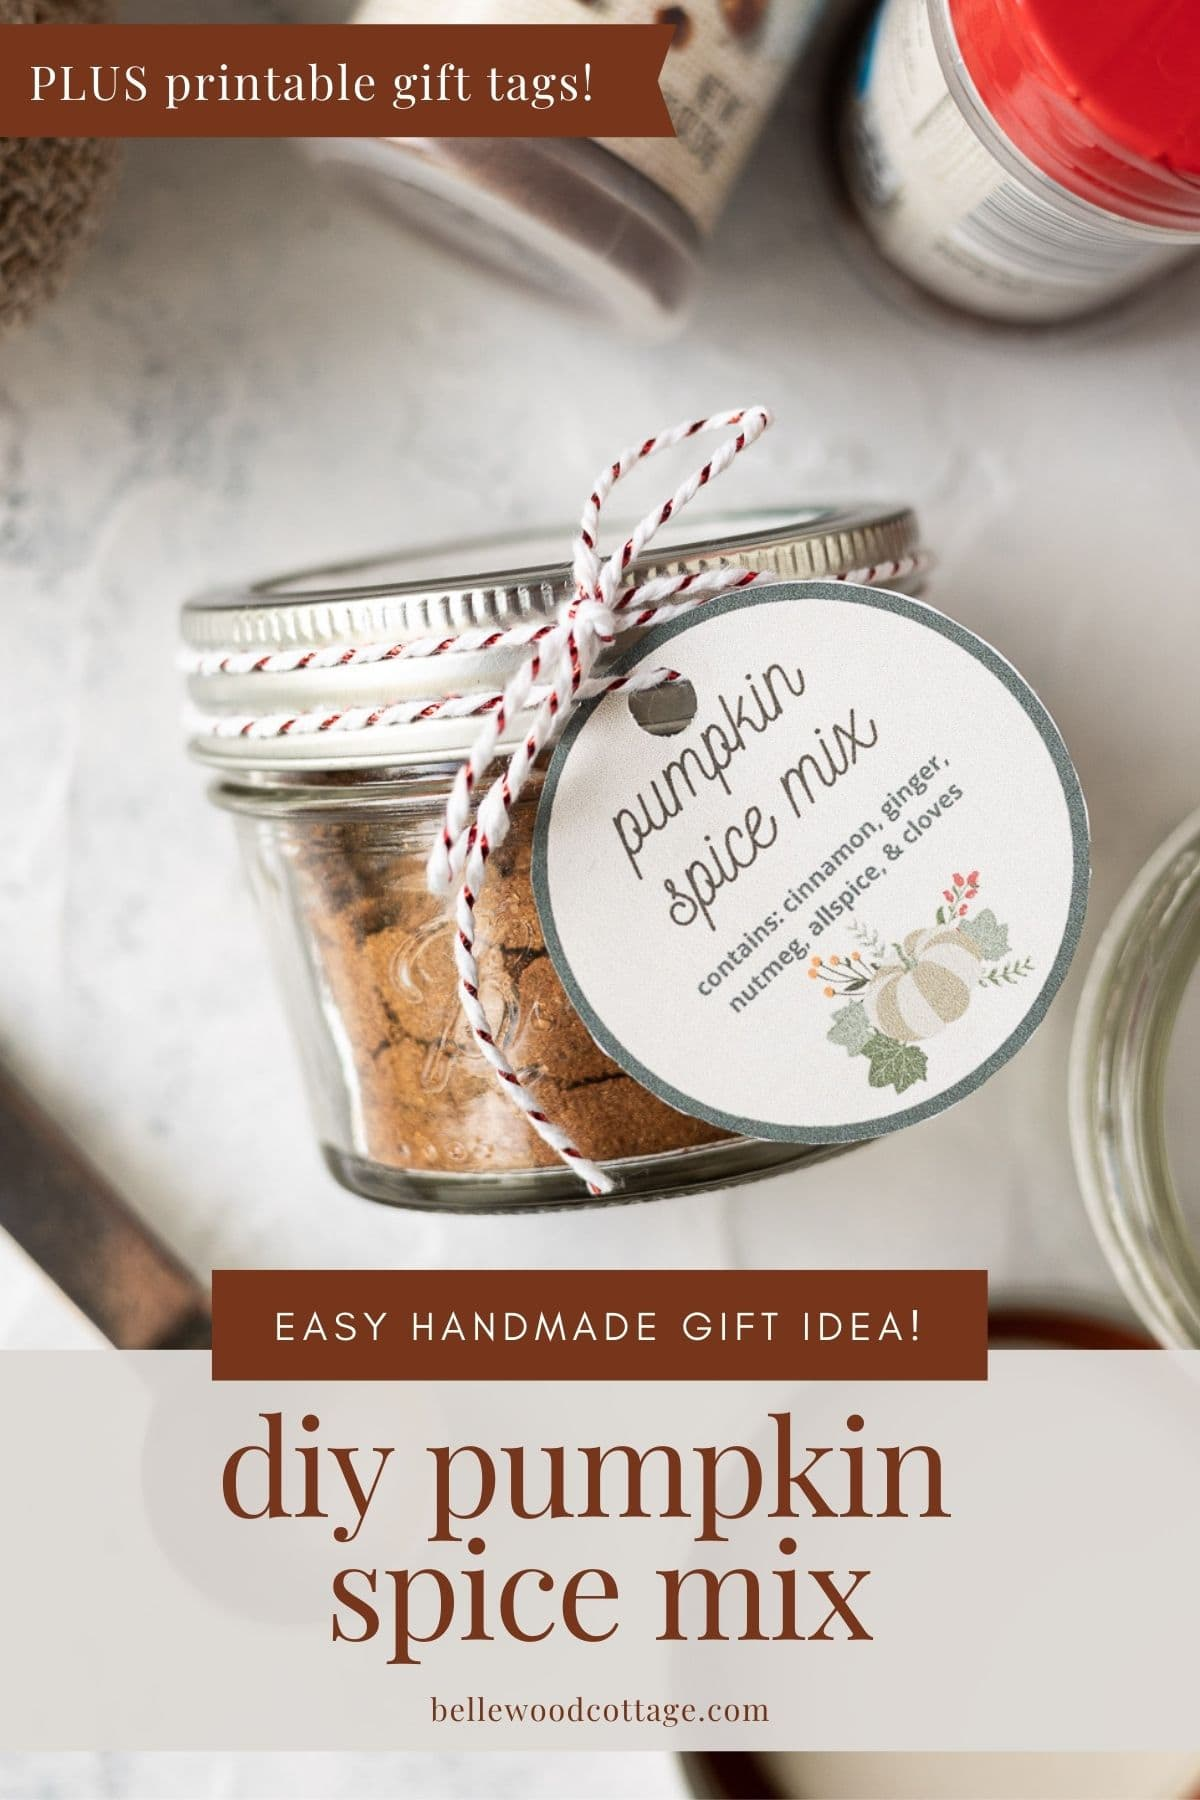 """A small mason jar filled with pumpkin spice mix and and tied with a gift tag, with the words, """"DIY Pumpkin Spice Mix - Easy Handmade Gift Idea, Plus Printable Gift Tags""""."""